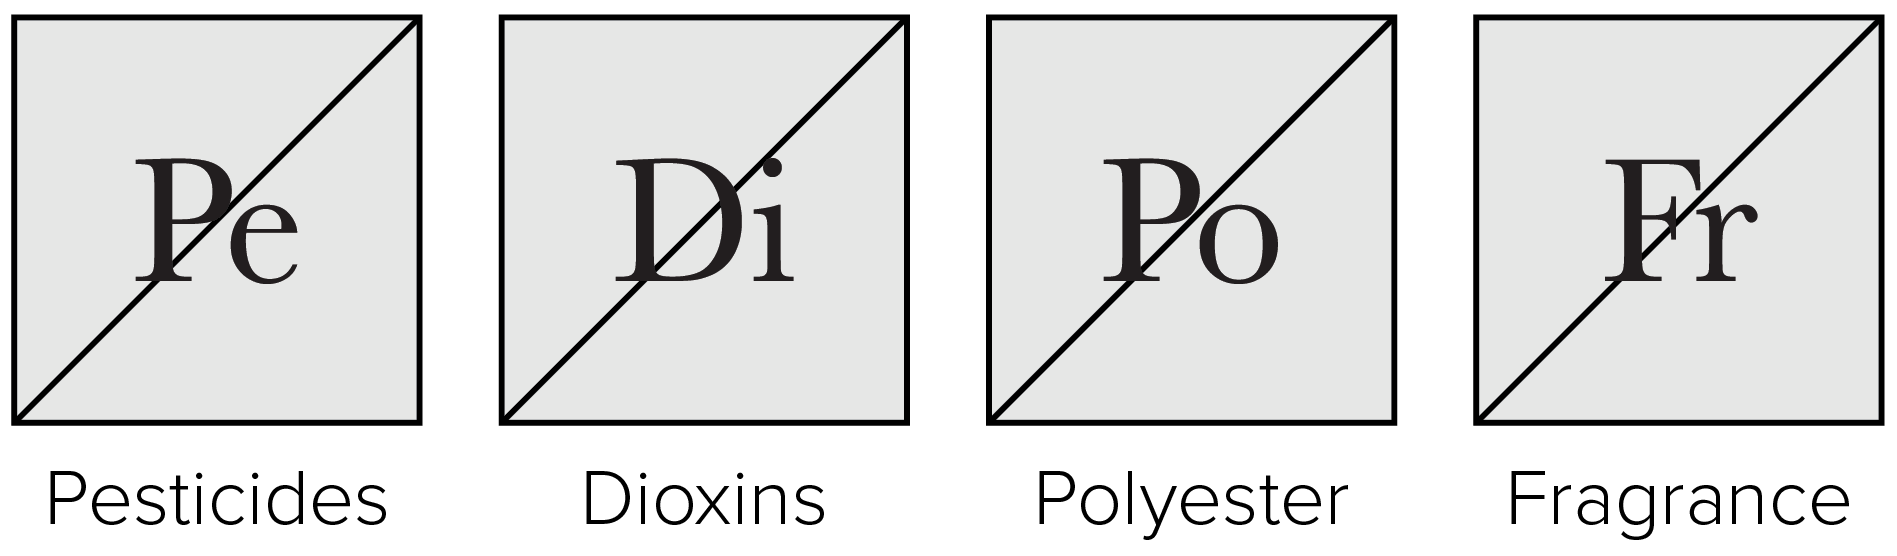 """Four squares that resemble elements. Each has a diagonal line from bottom left to top right and read """"Pe,"""" """"Di,"""" """"Po,"""" & """"Fr"""""""